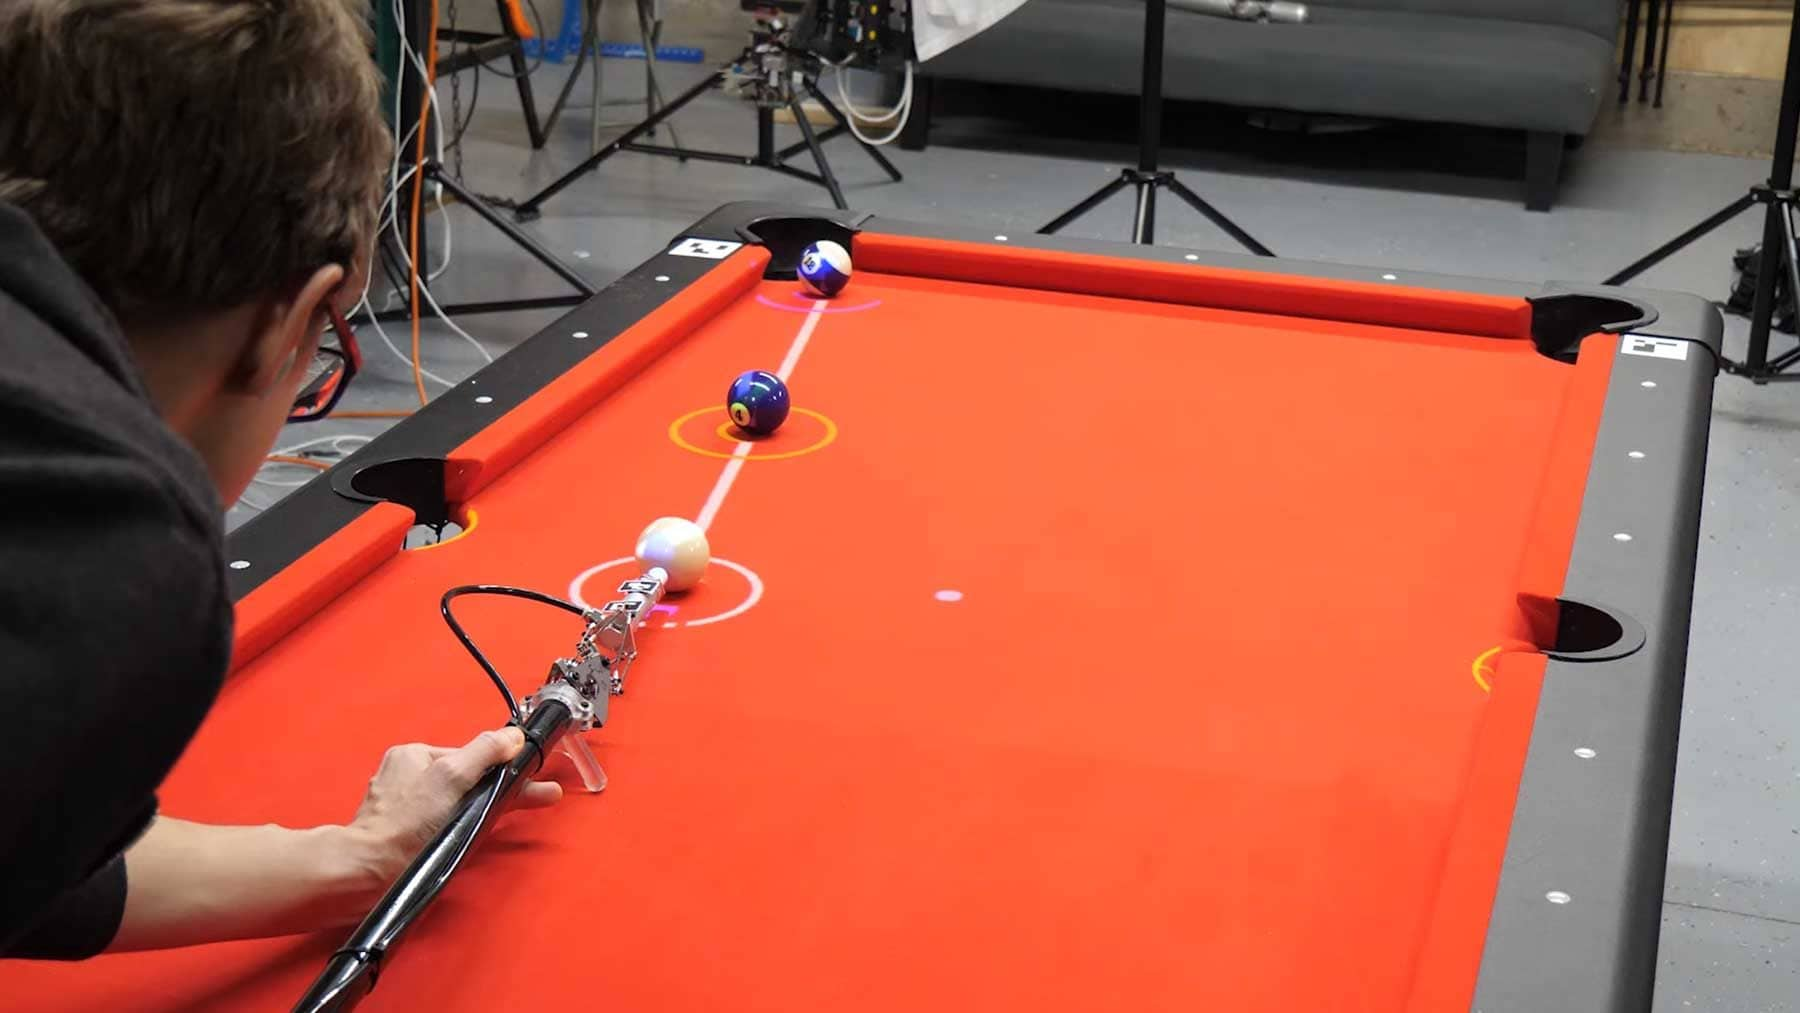 Ein intelligenter Billard-Queue | Gadgets | Was is hier eigentlich los?